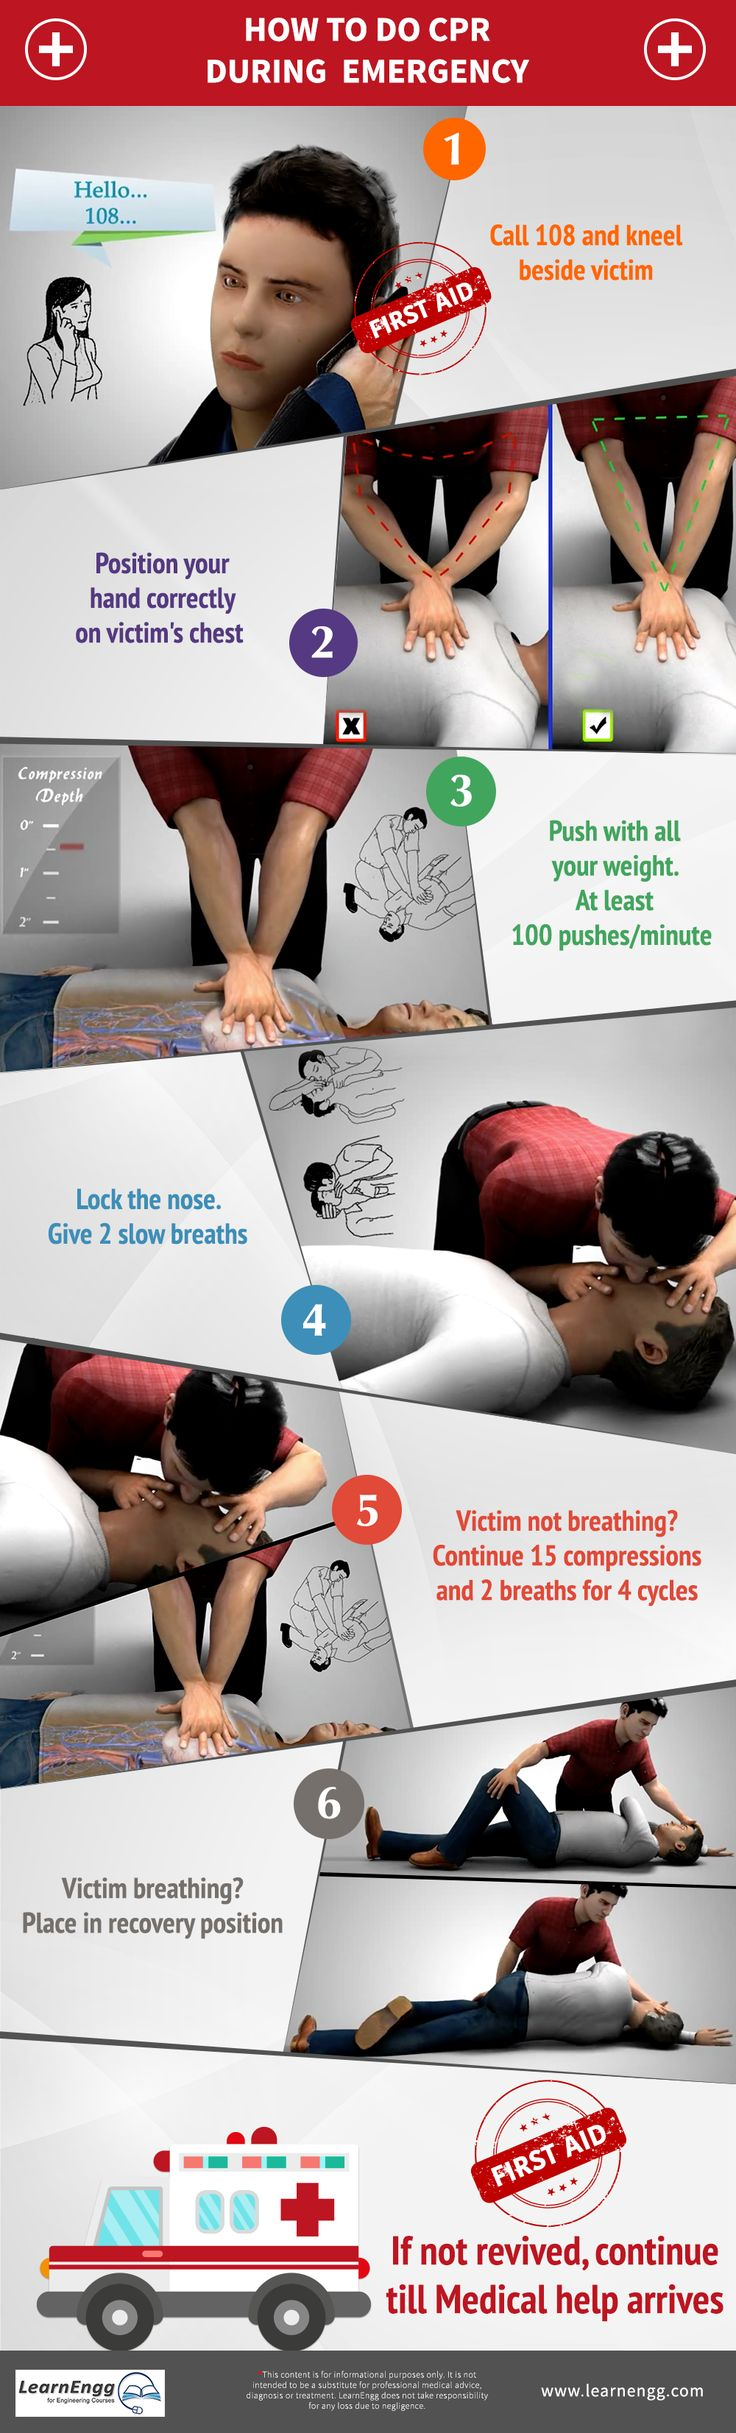 How to do CPR during Emergency? Learn from our blog and video: [Click on the image] #learnengg #cpr #firstaid